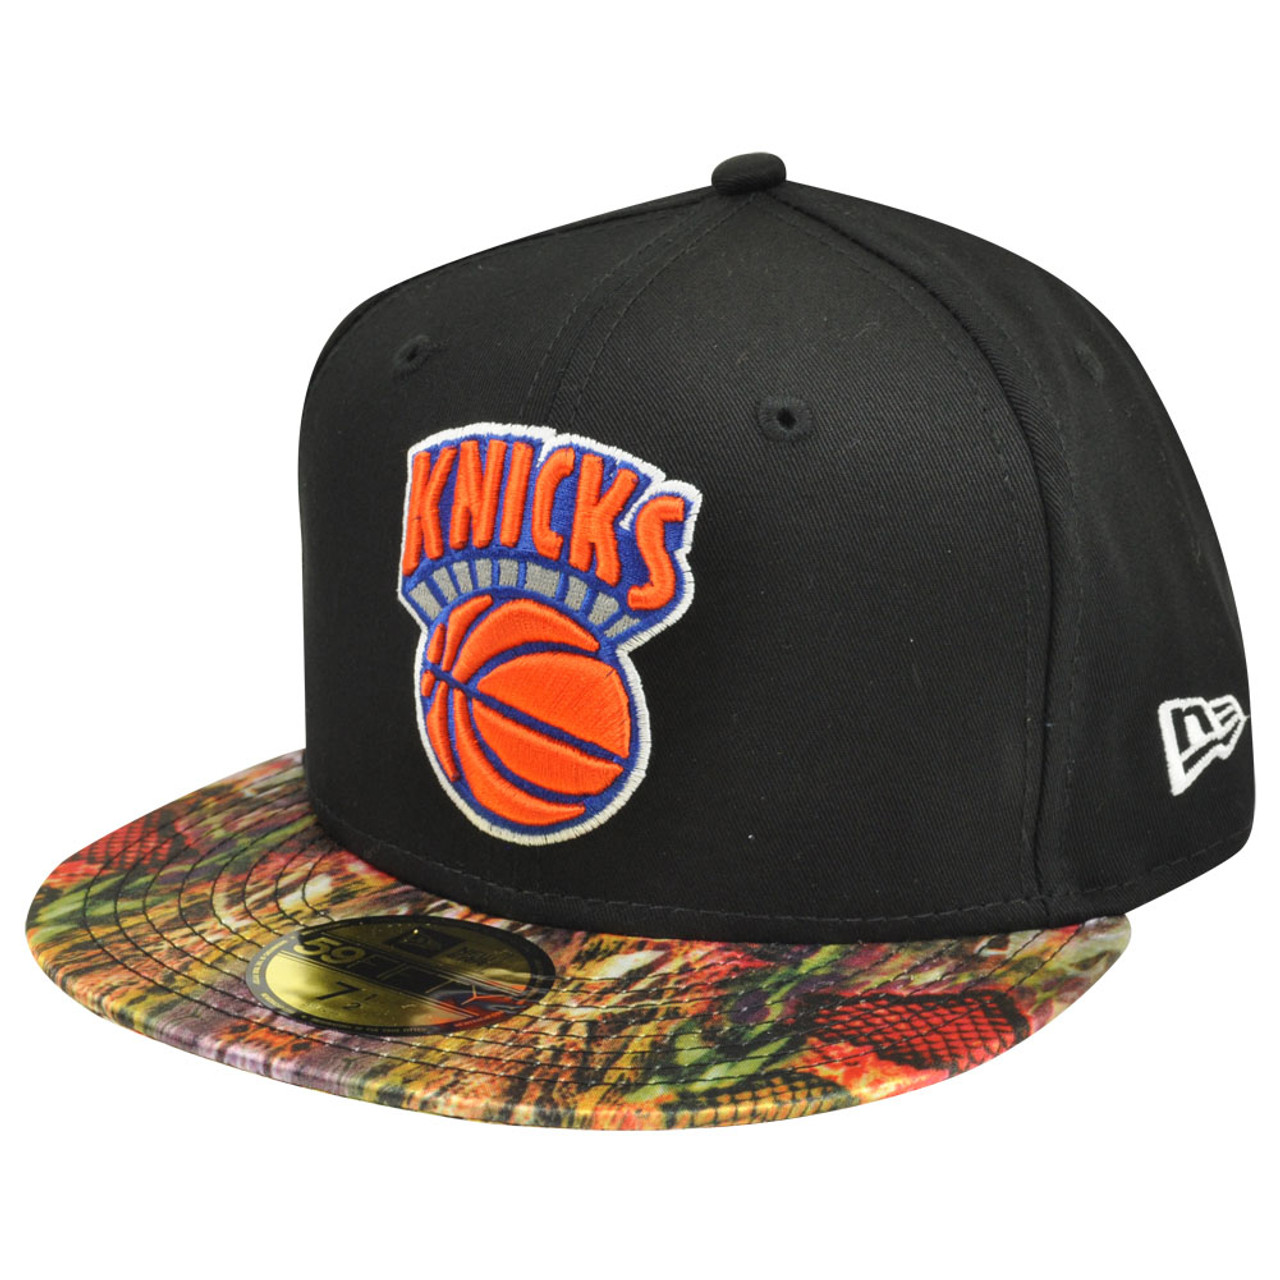 huge selection of 72737 f5122 NBA HWC New Era 59Fifty 5950 NY New York Knicks Snake Visor Fitted Hat Cap  - Cap Store Online.com